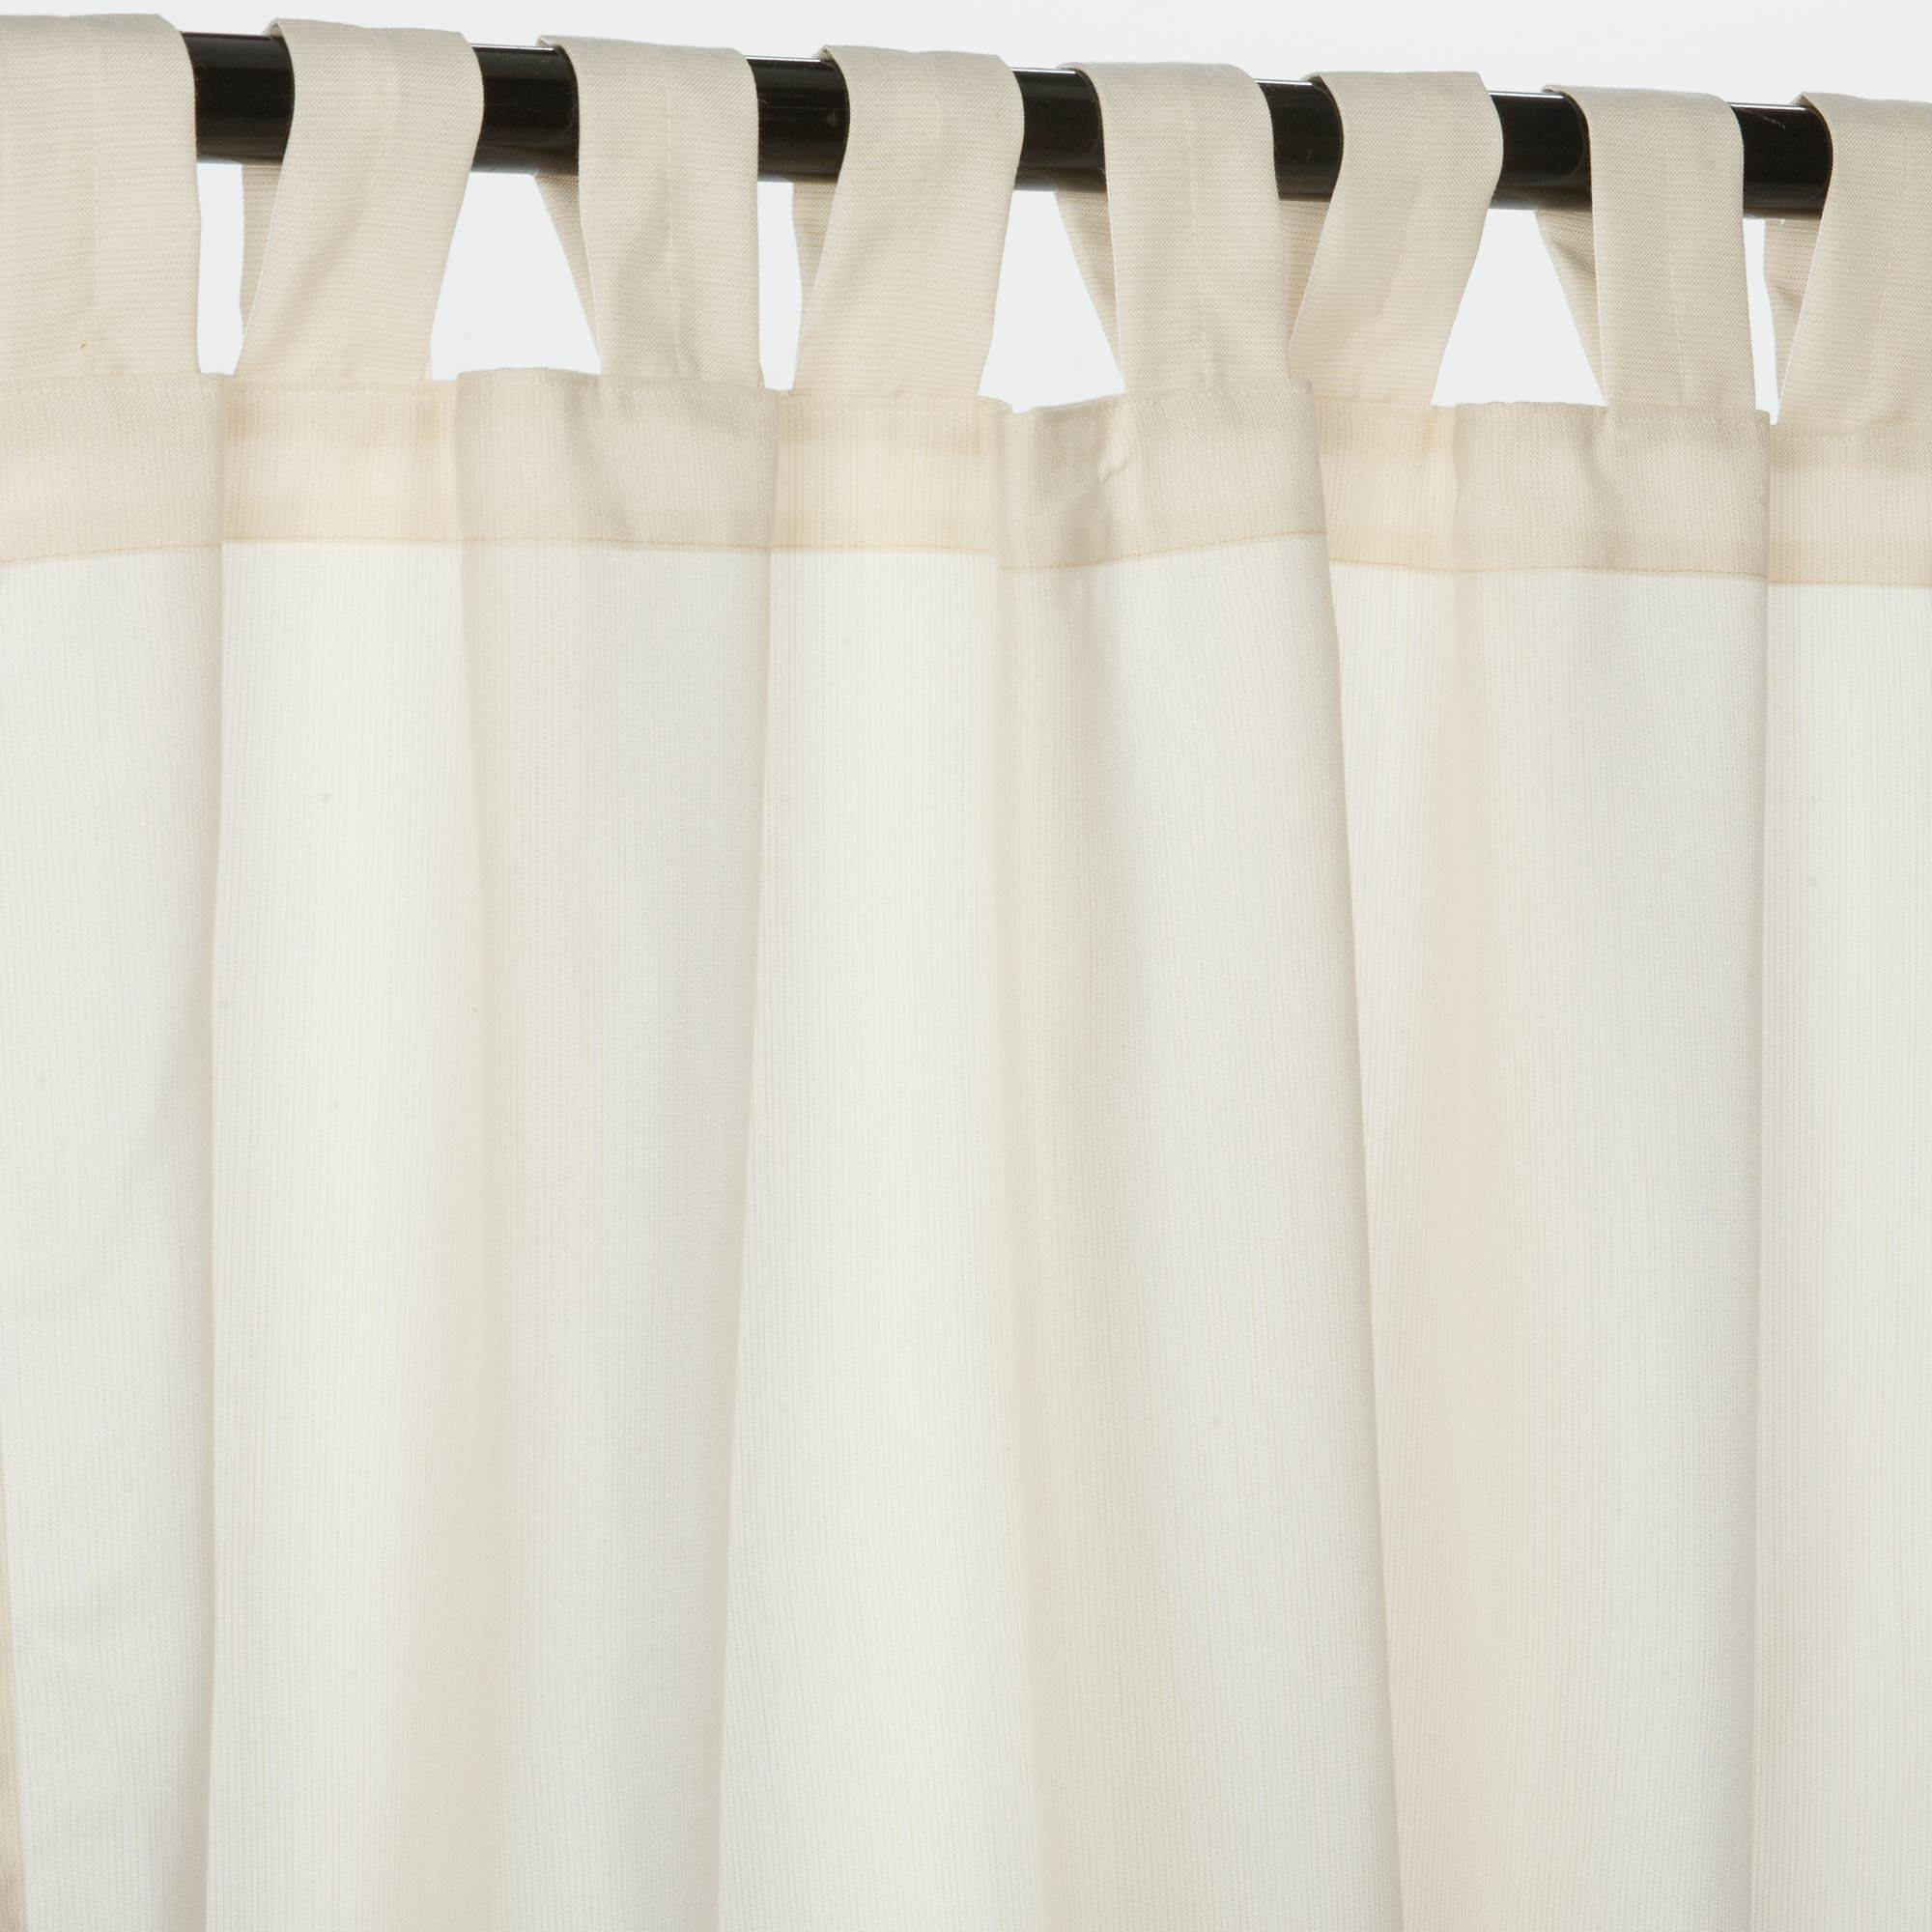 Outdoor curtains - Spectrum Eggshell Sunbrella Outdoor Curtain With Tabs